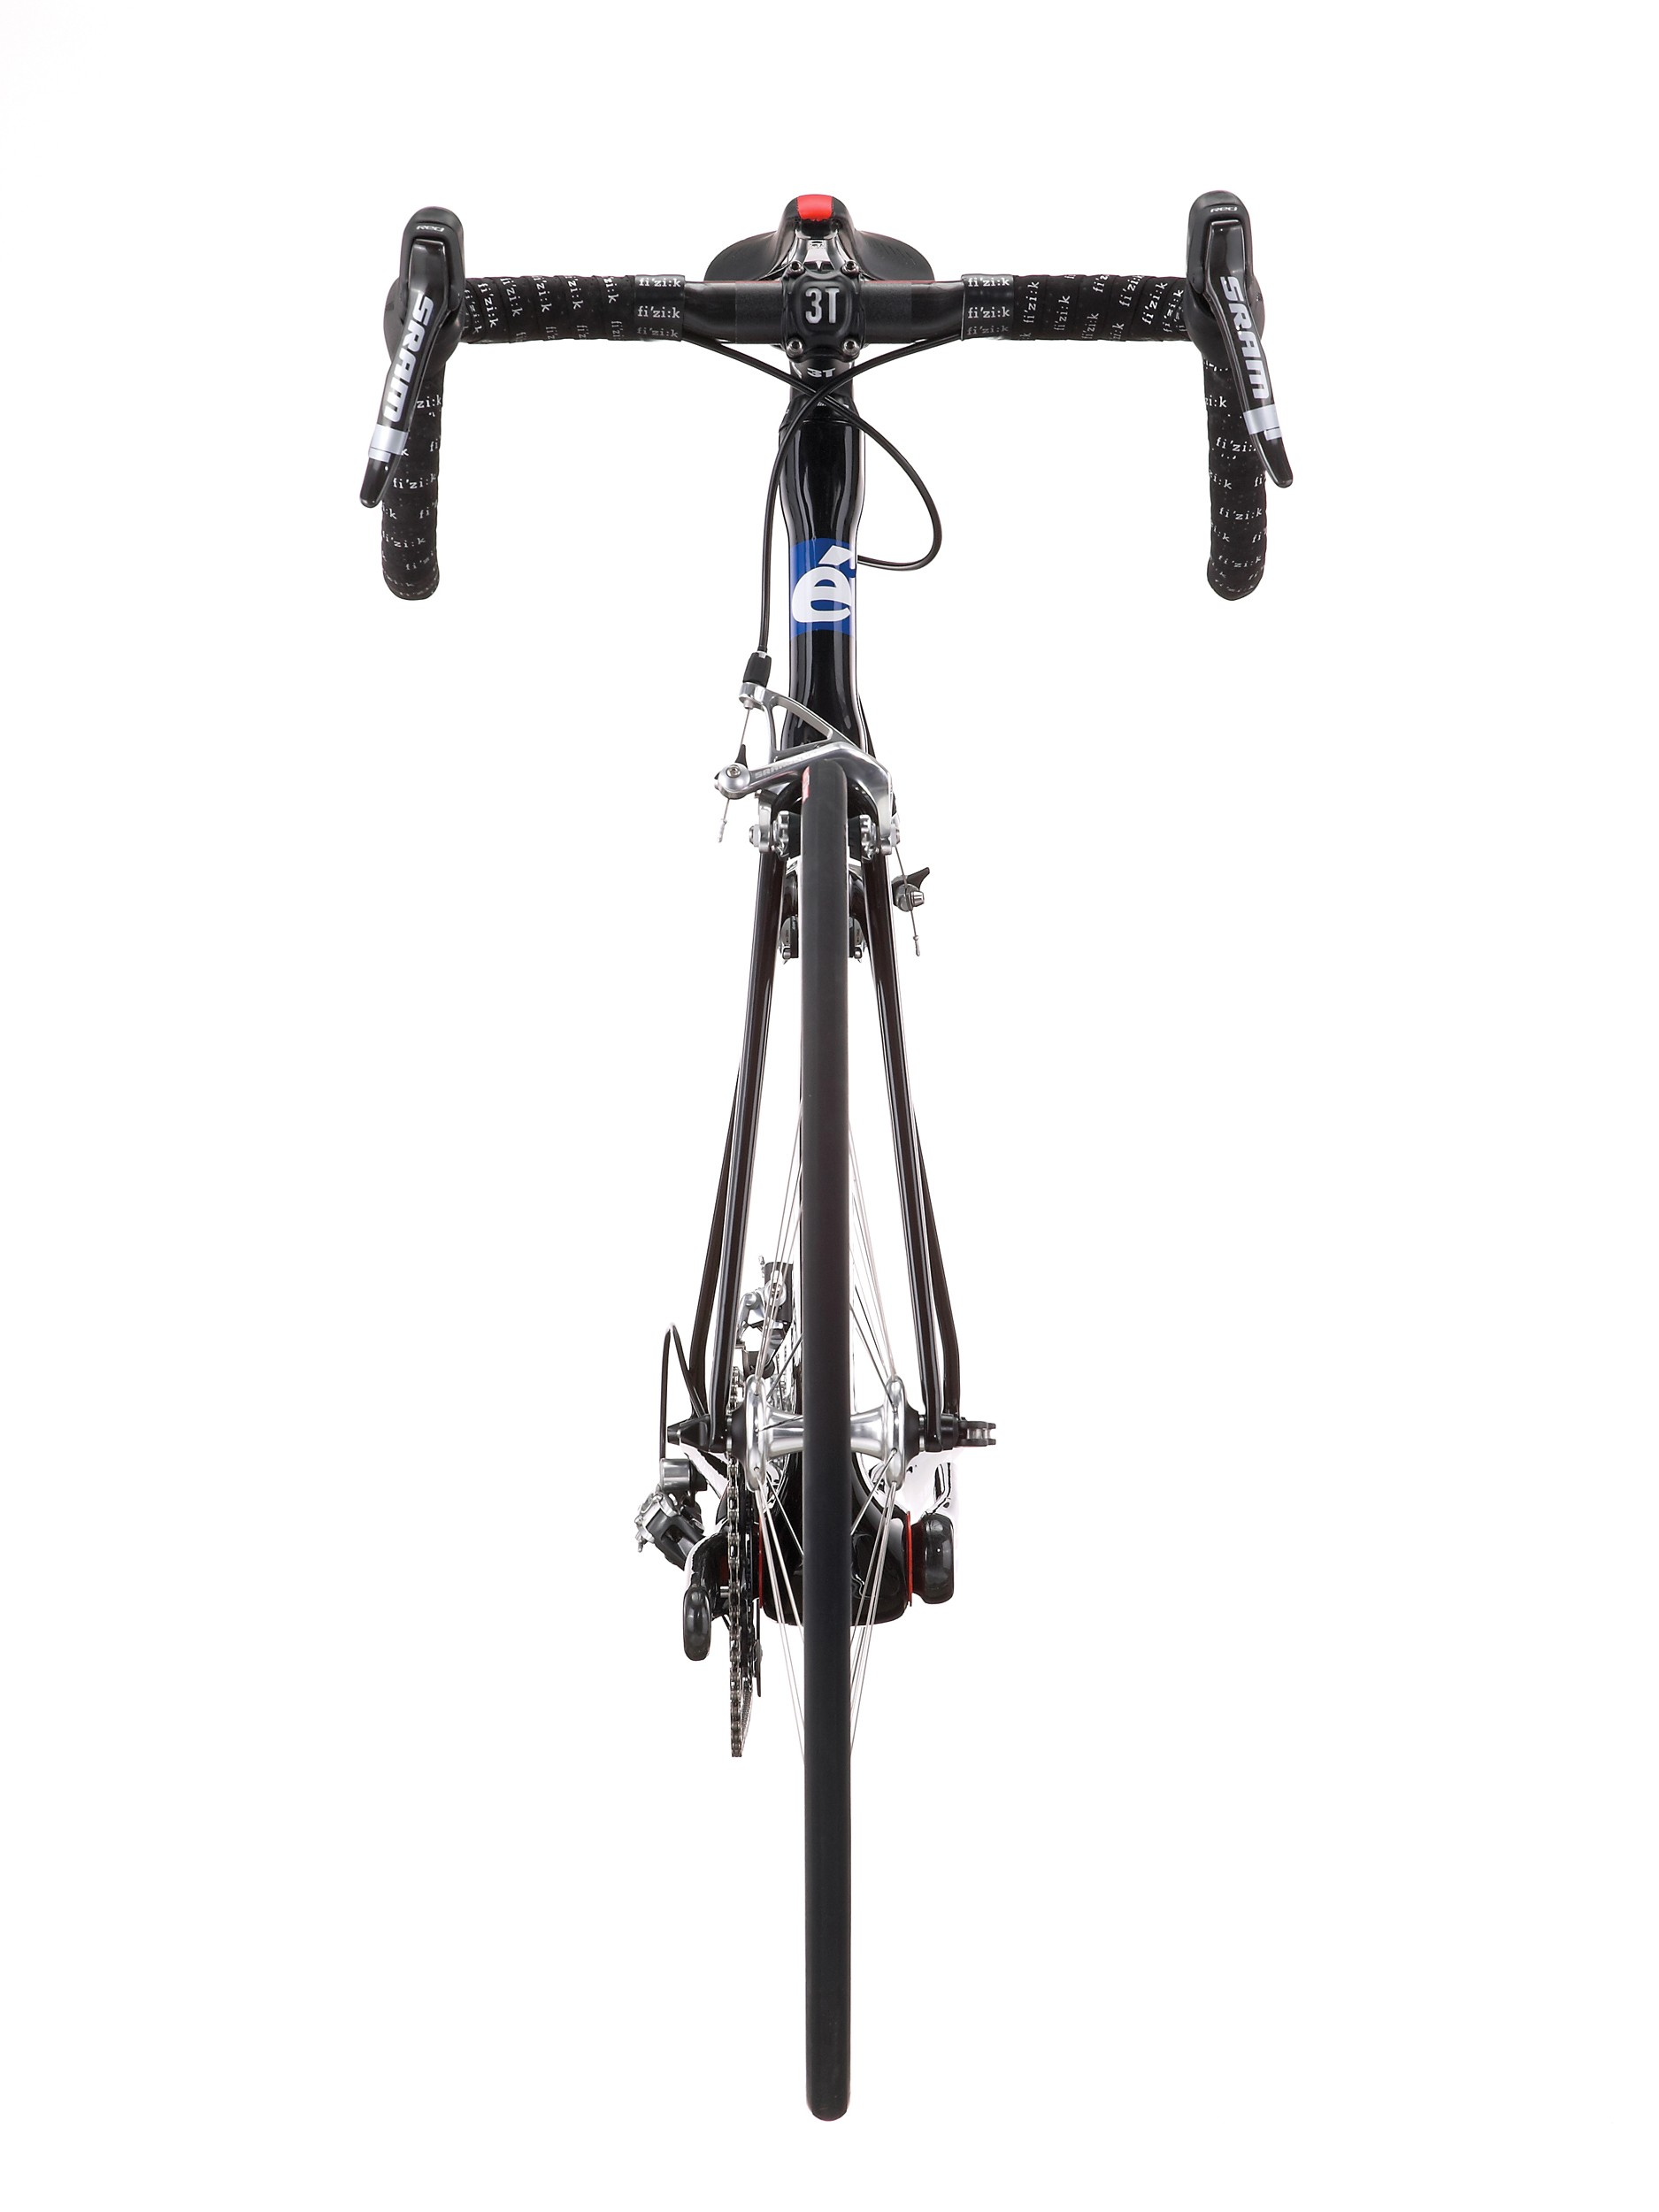 Cervelo sticks with a conventional 1 1/8in steerer to decrease frontal area.